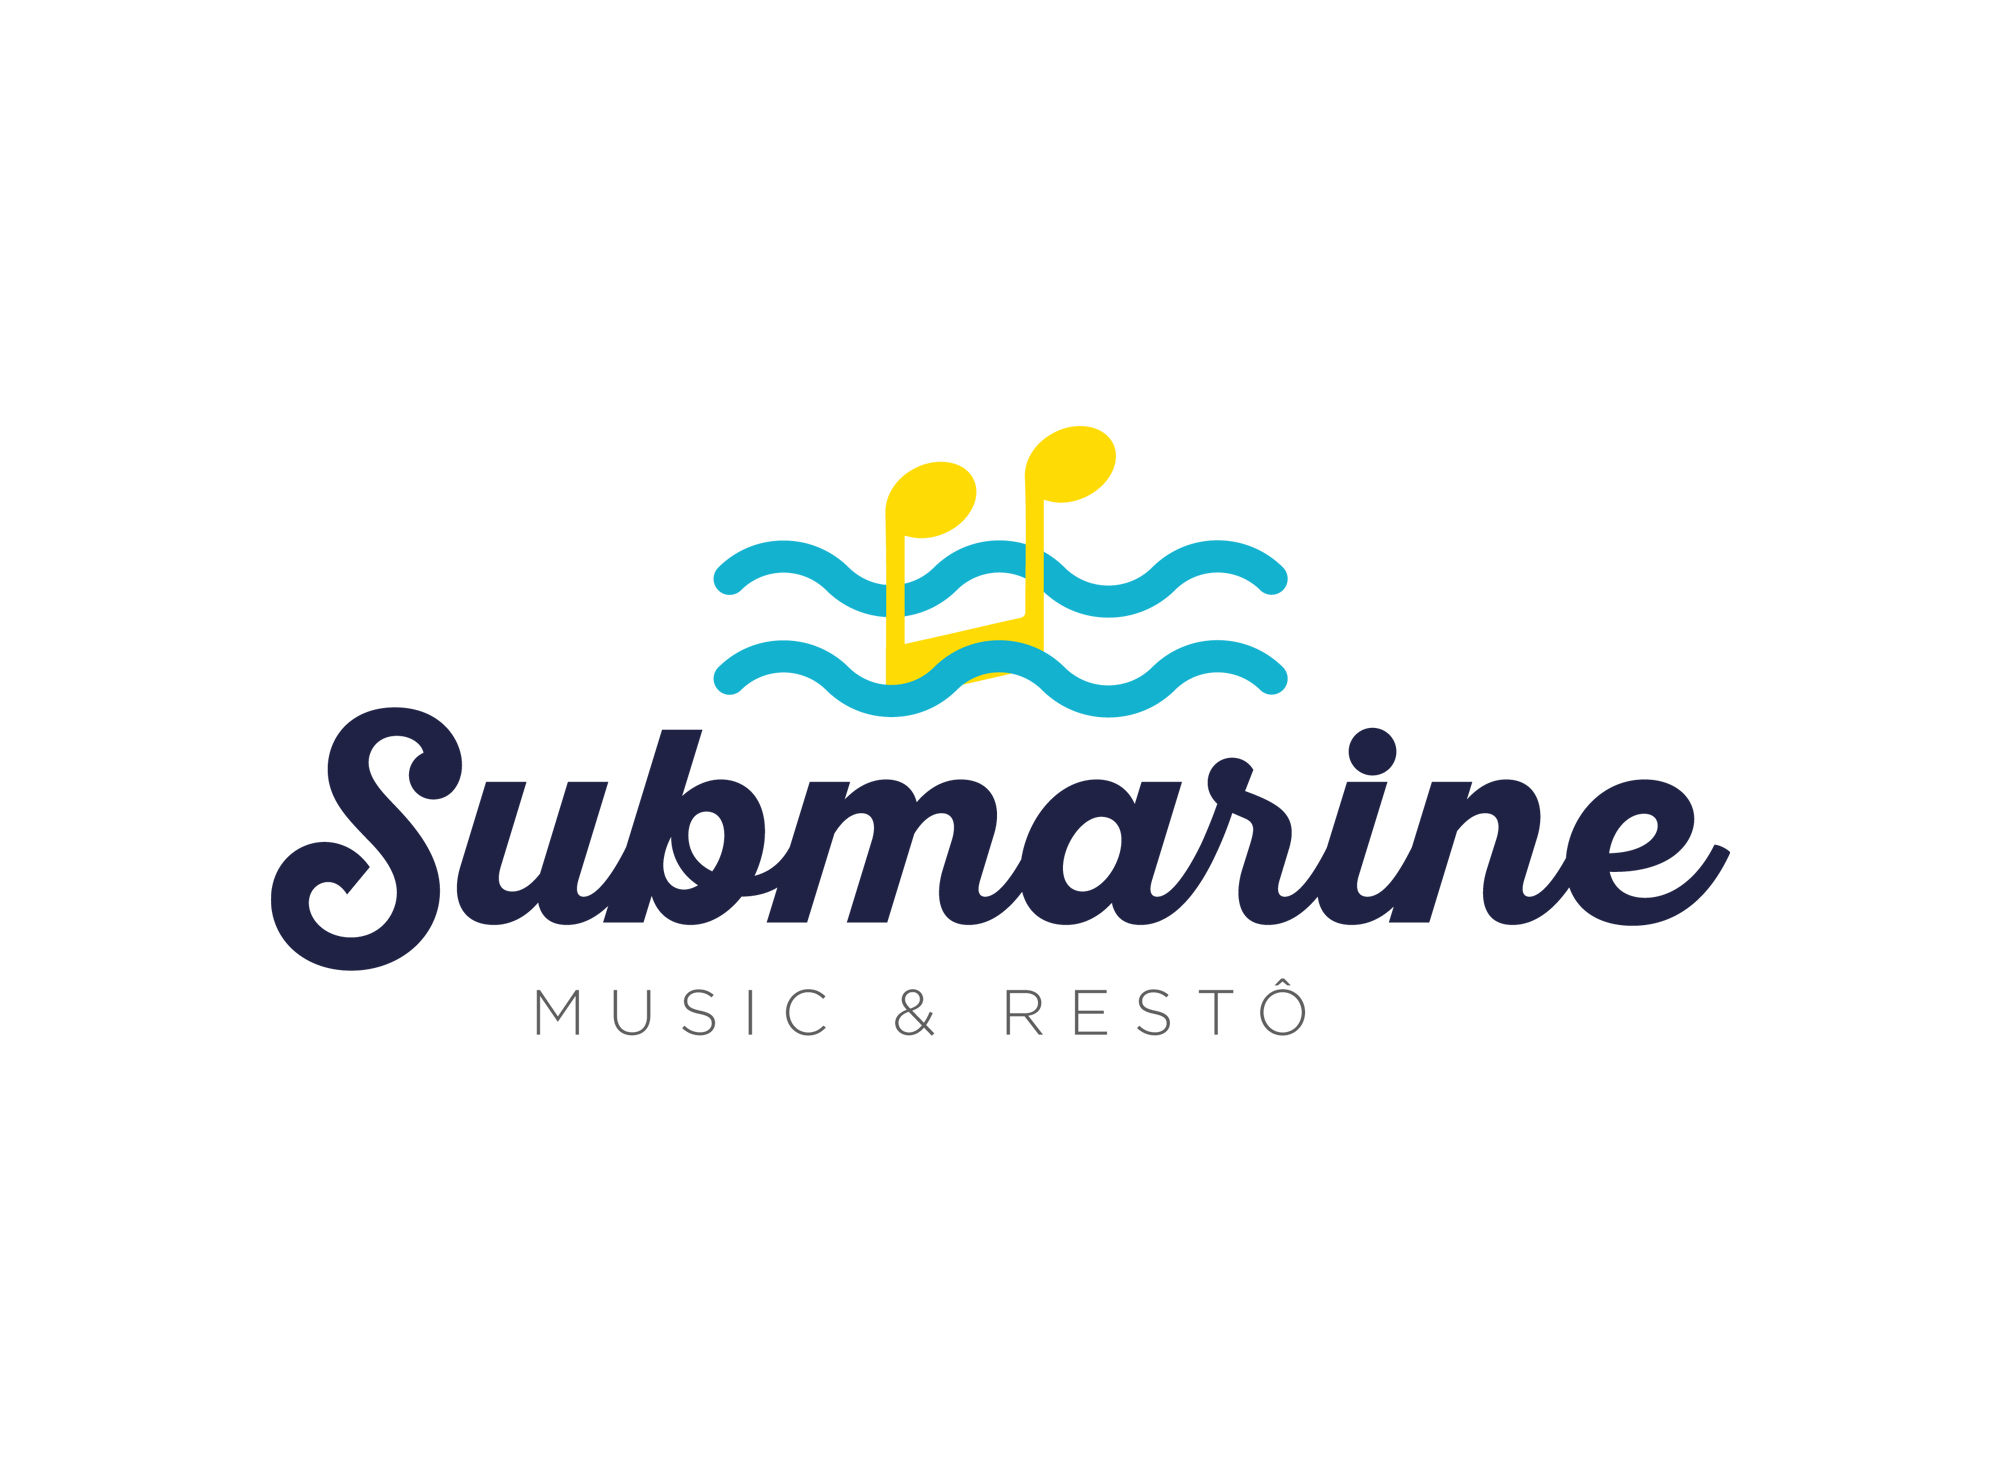 submarine-music-resto-cliente-agencia-diretriz-digital-marketing-fortaleza